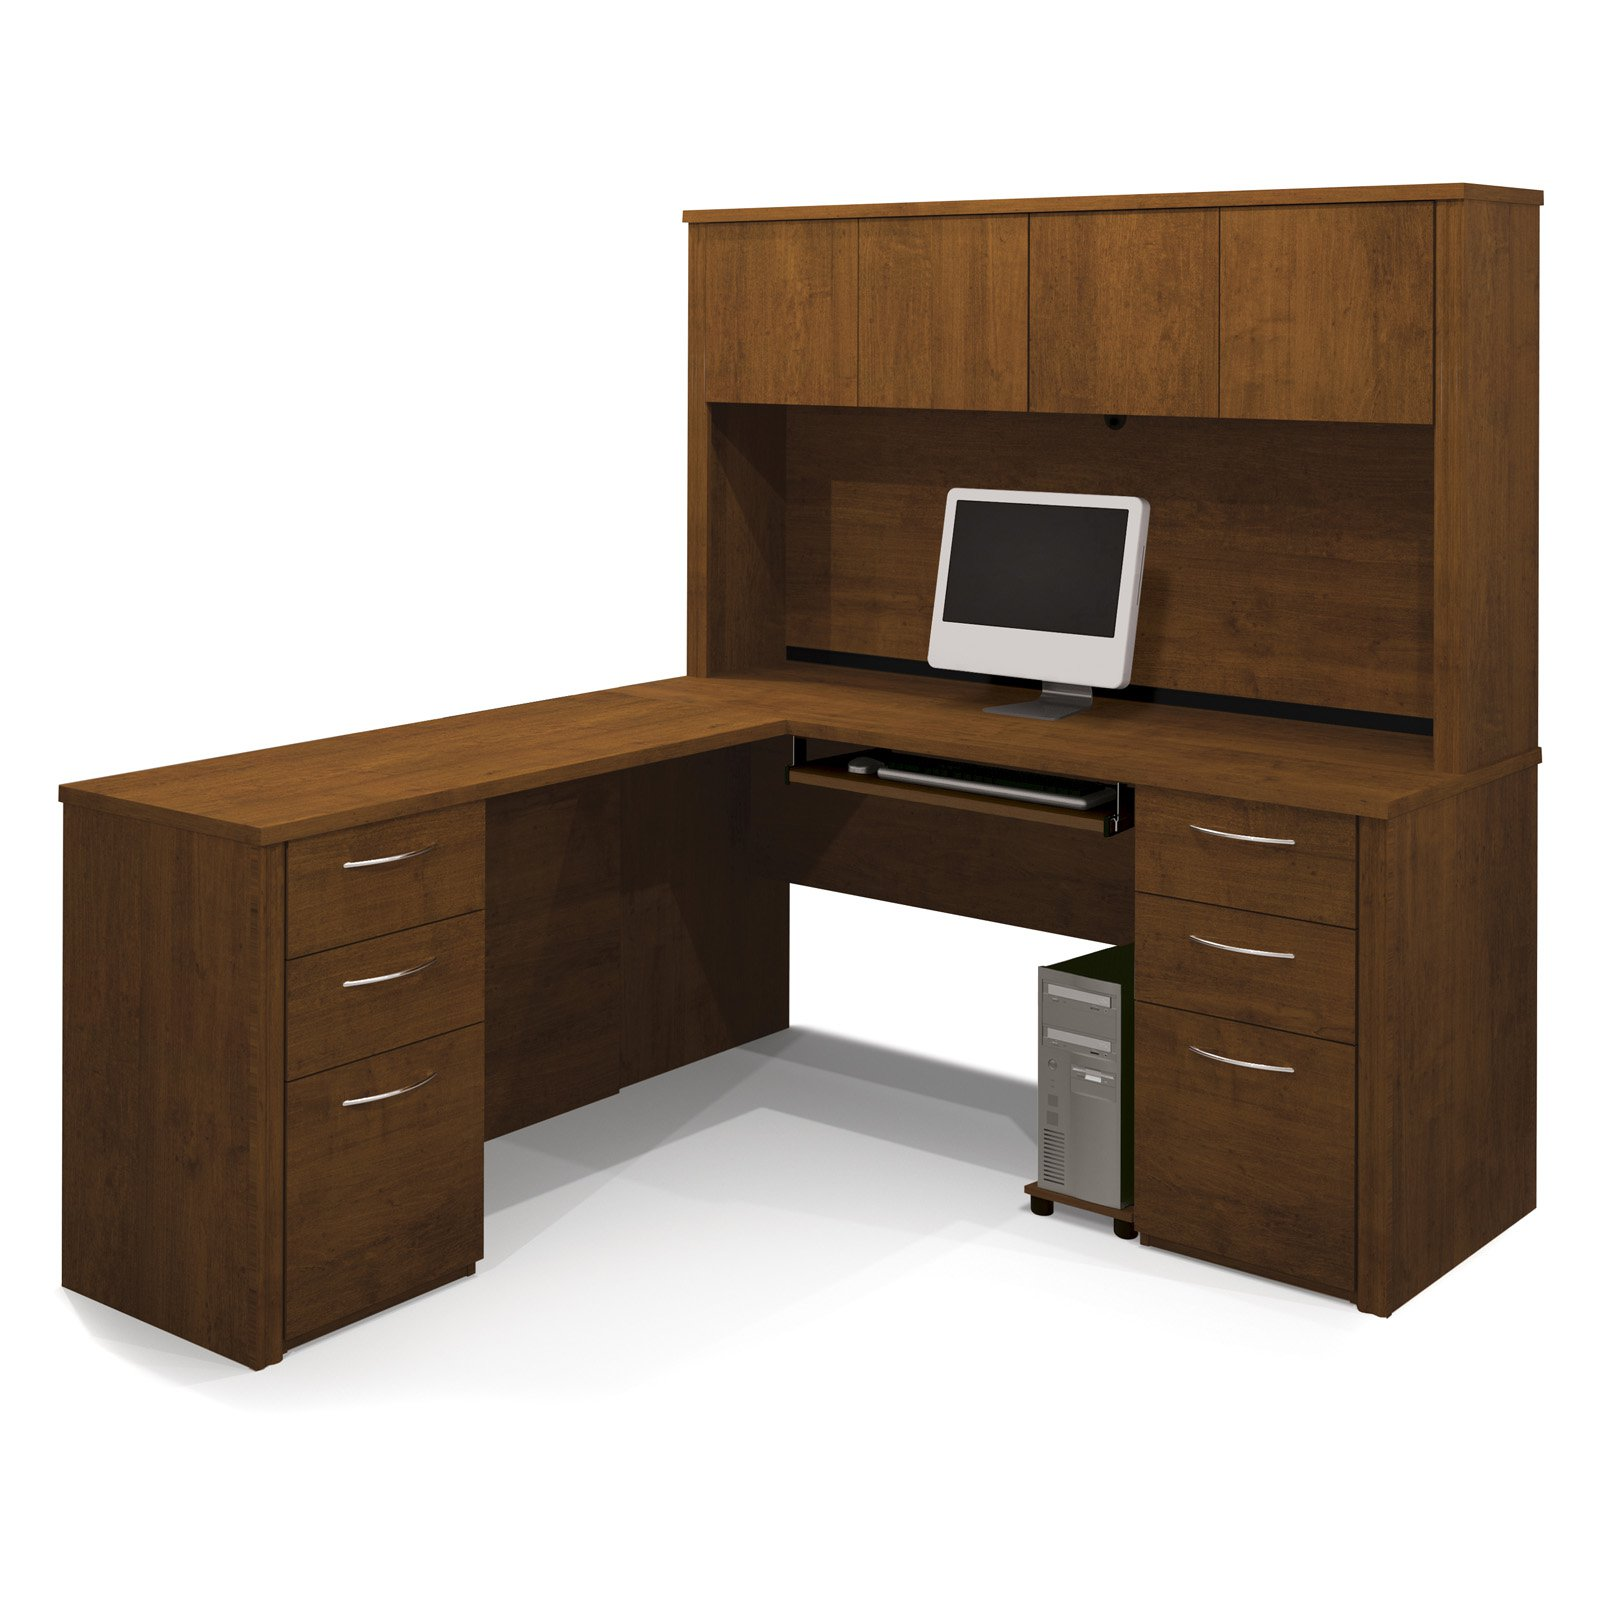 Bestar Embassy L-Shaped Workstation with 2 Pedestals - Tuscany Brown